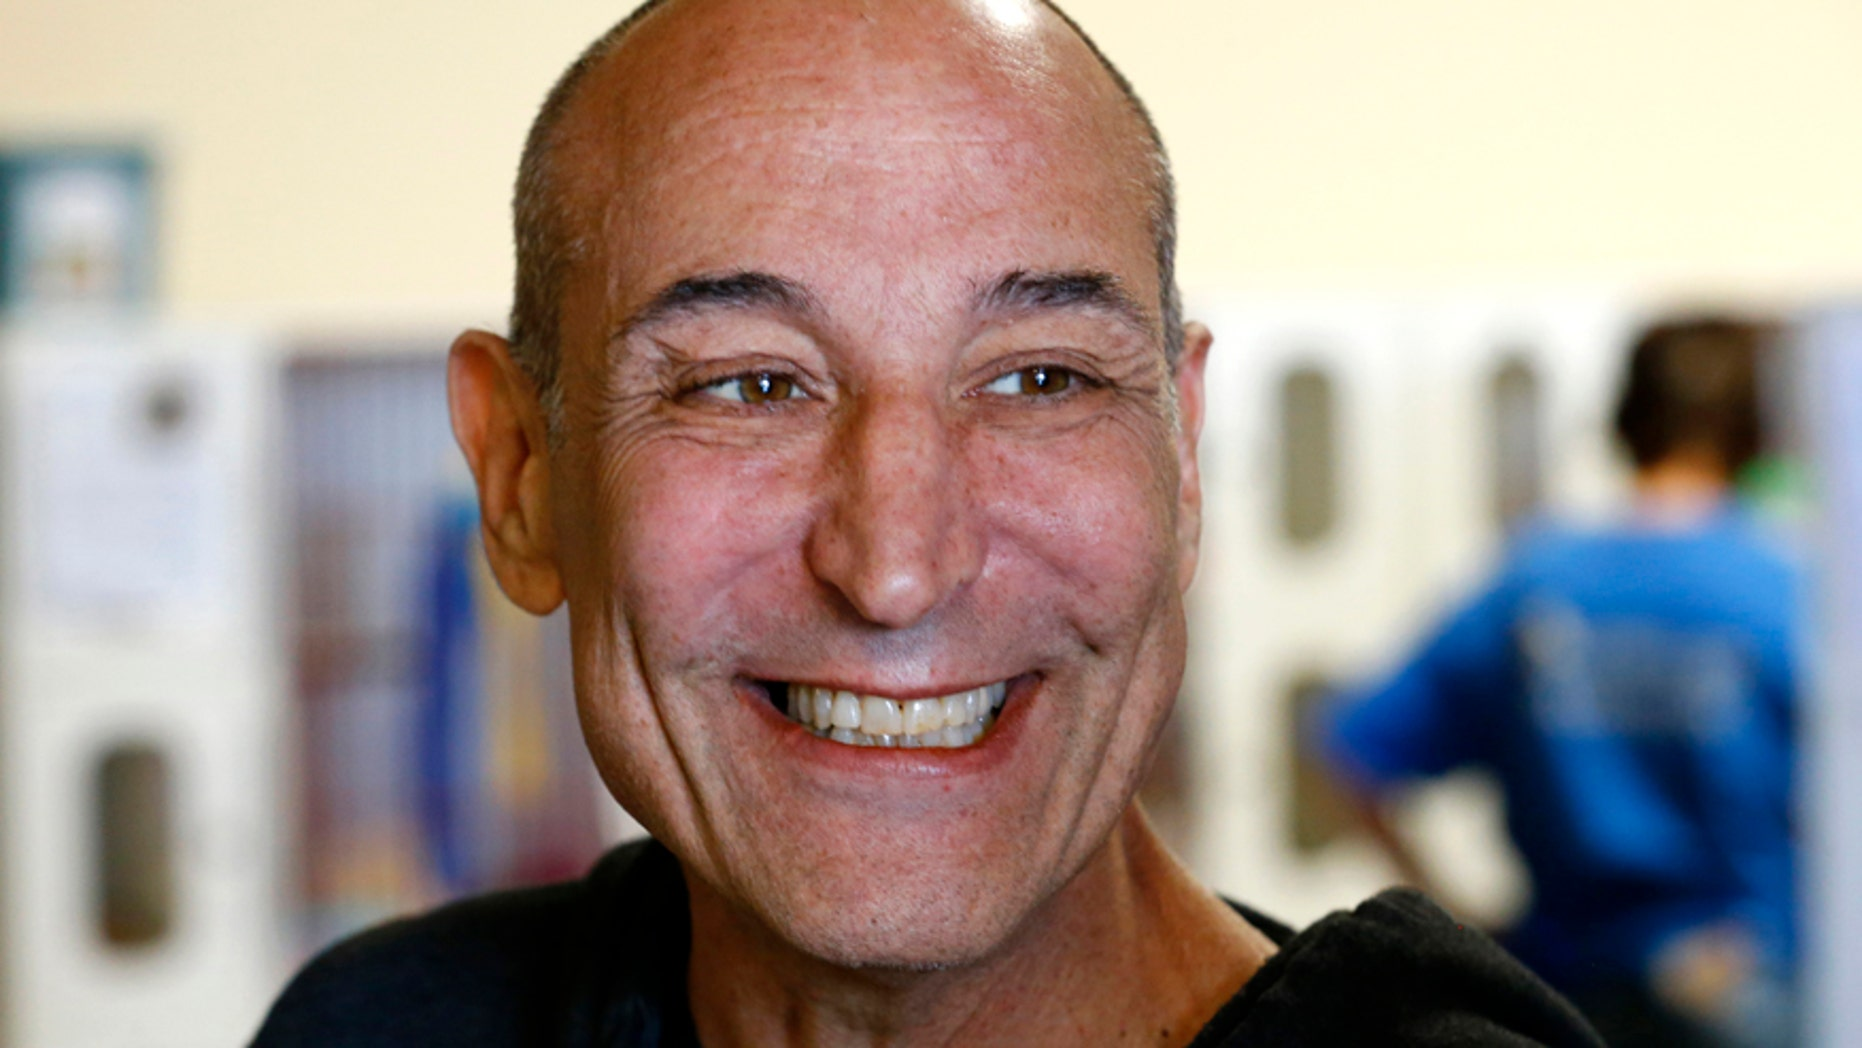 Hollywood mogul and co-creator of The Simpsons, Sam Simon, smiles while visiting the San Diego Humane Society after he financed the purchase of a chinchilla farm in order to rescue over 400 chinchillas and shutter the business in Vista, California August 19, 2014.